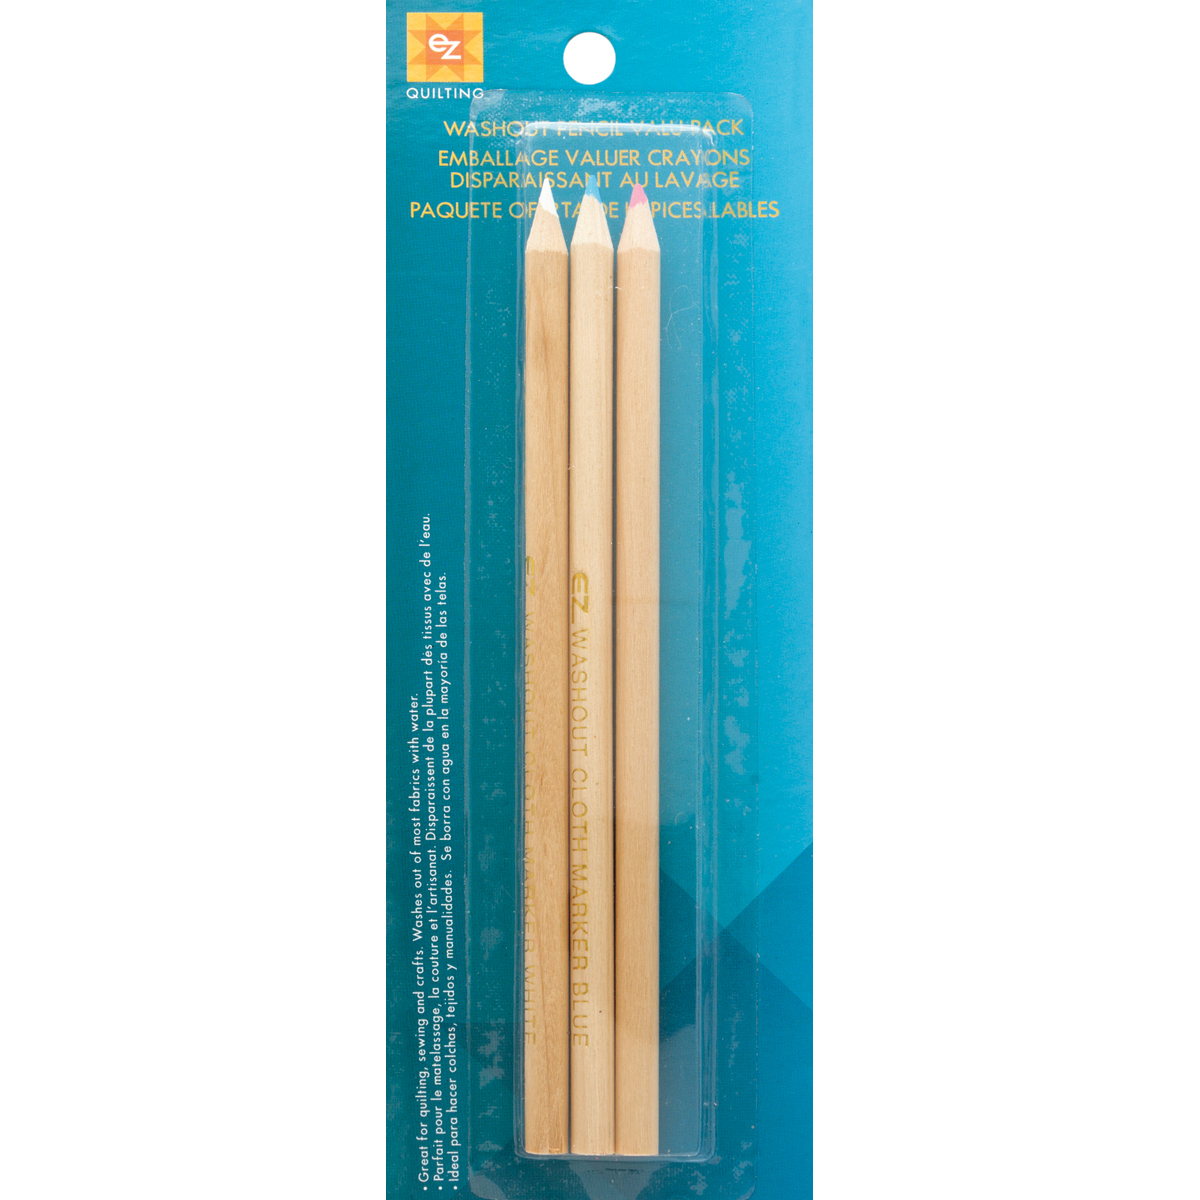 Wrights 882669 Washout Pencils, 3-Pack Multi-Colored